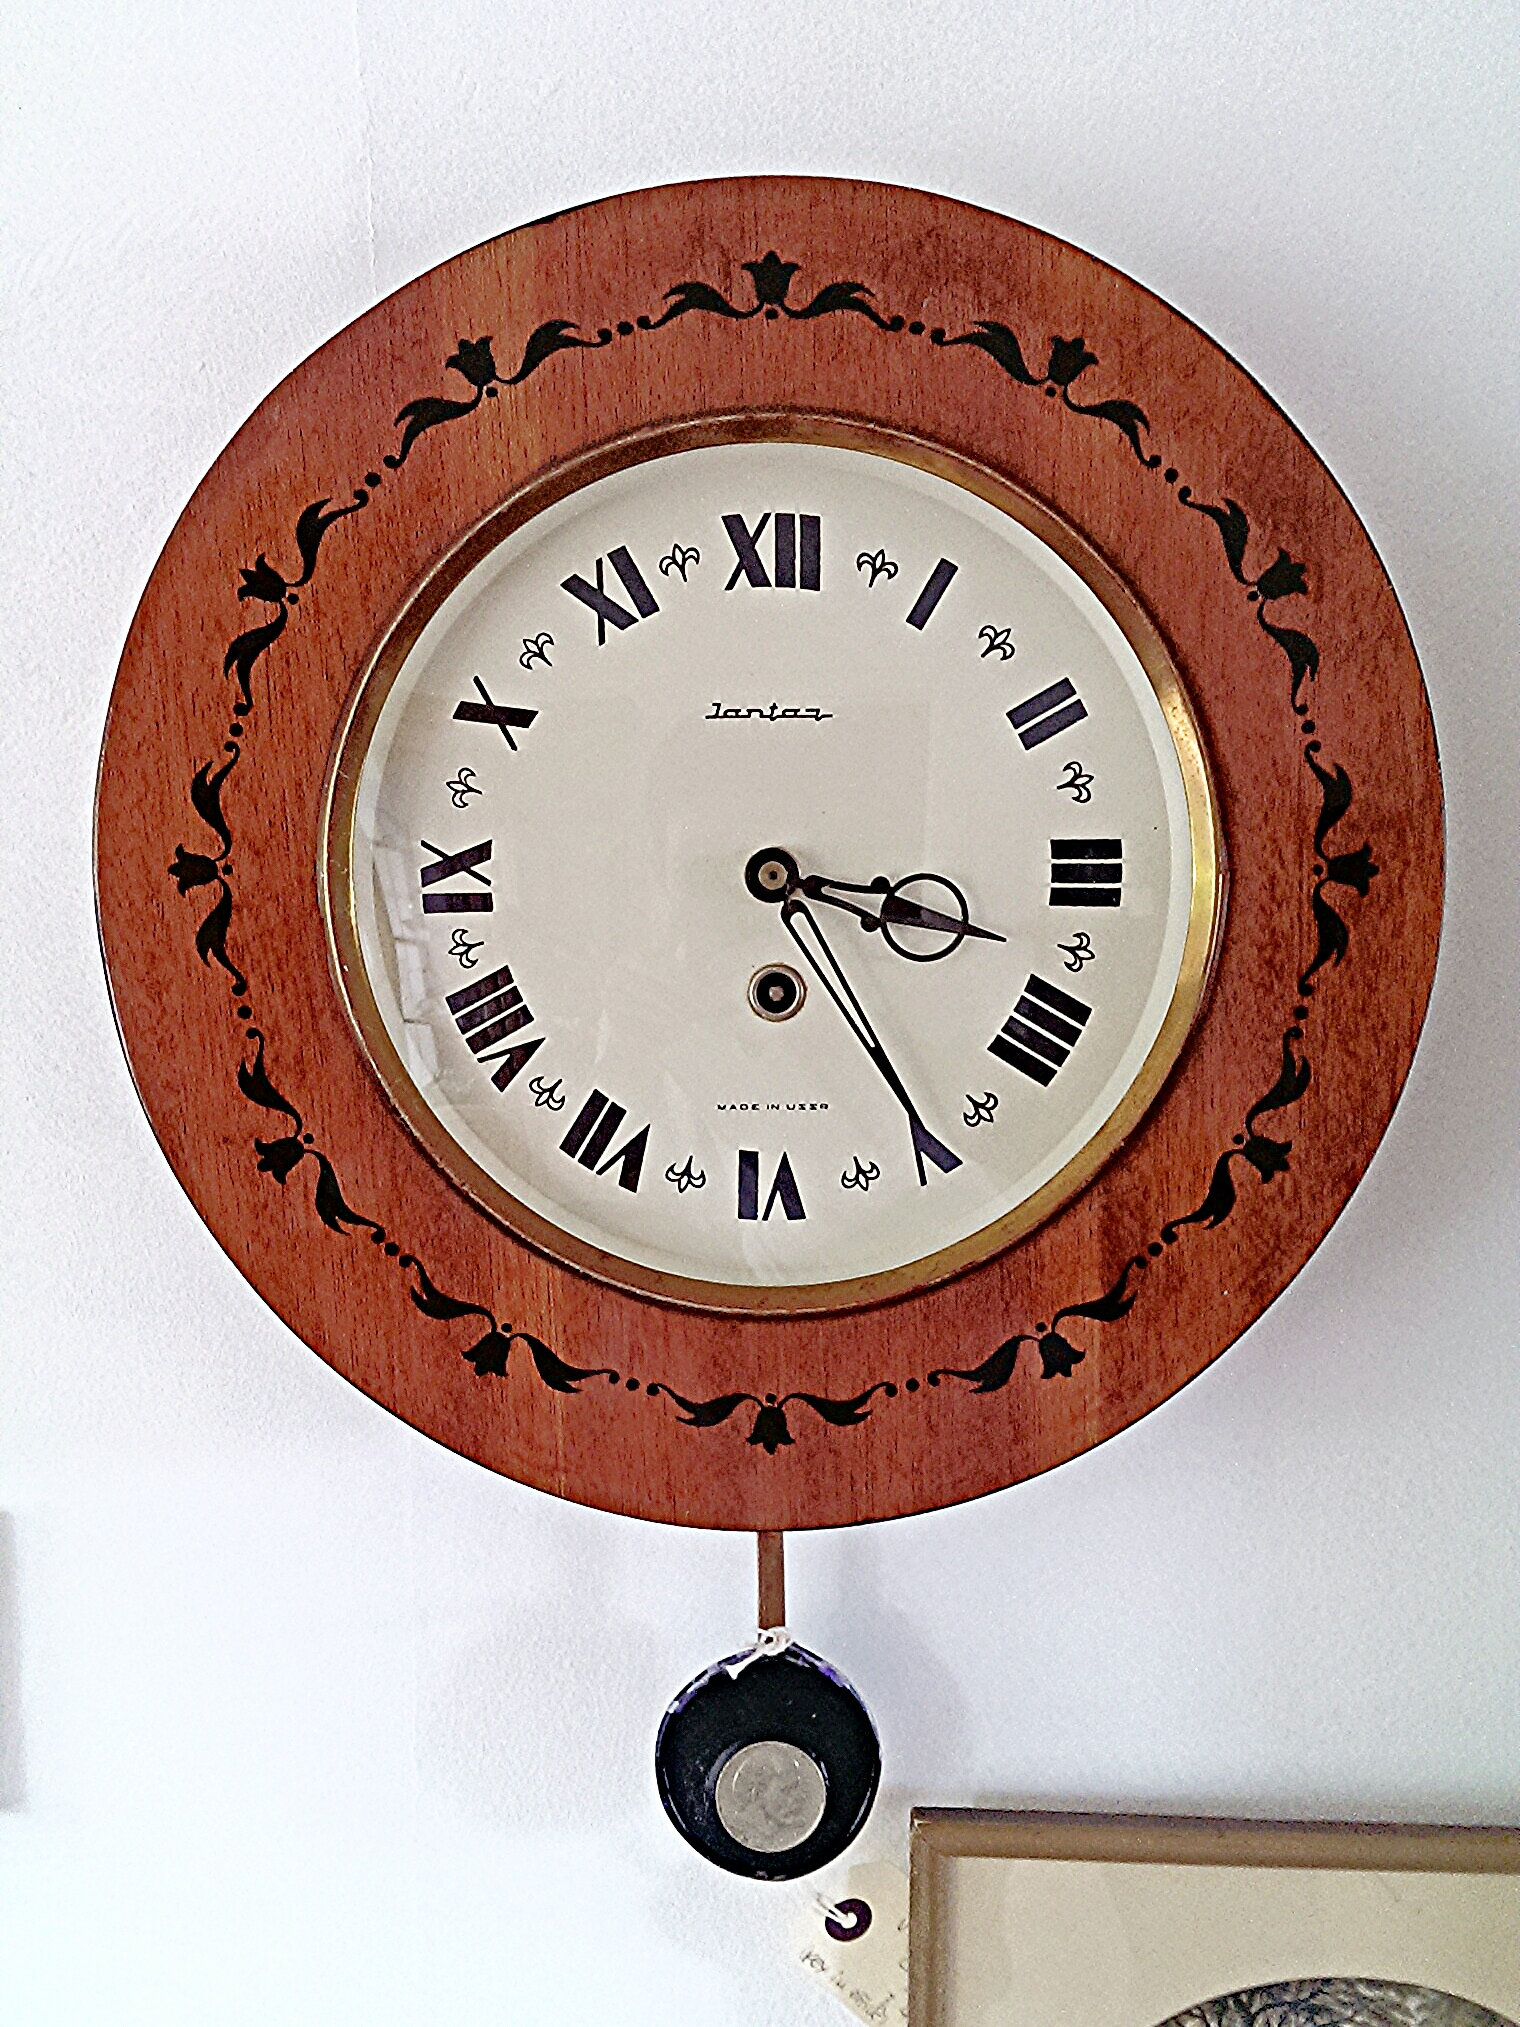 Russian wall clock choice image home wall decoration ideas alfredos emporium vintage russian wall clock vintage russian wall clock amipublicfo choice image amipublicfo Images